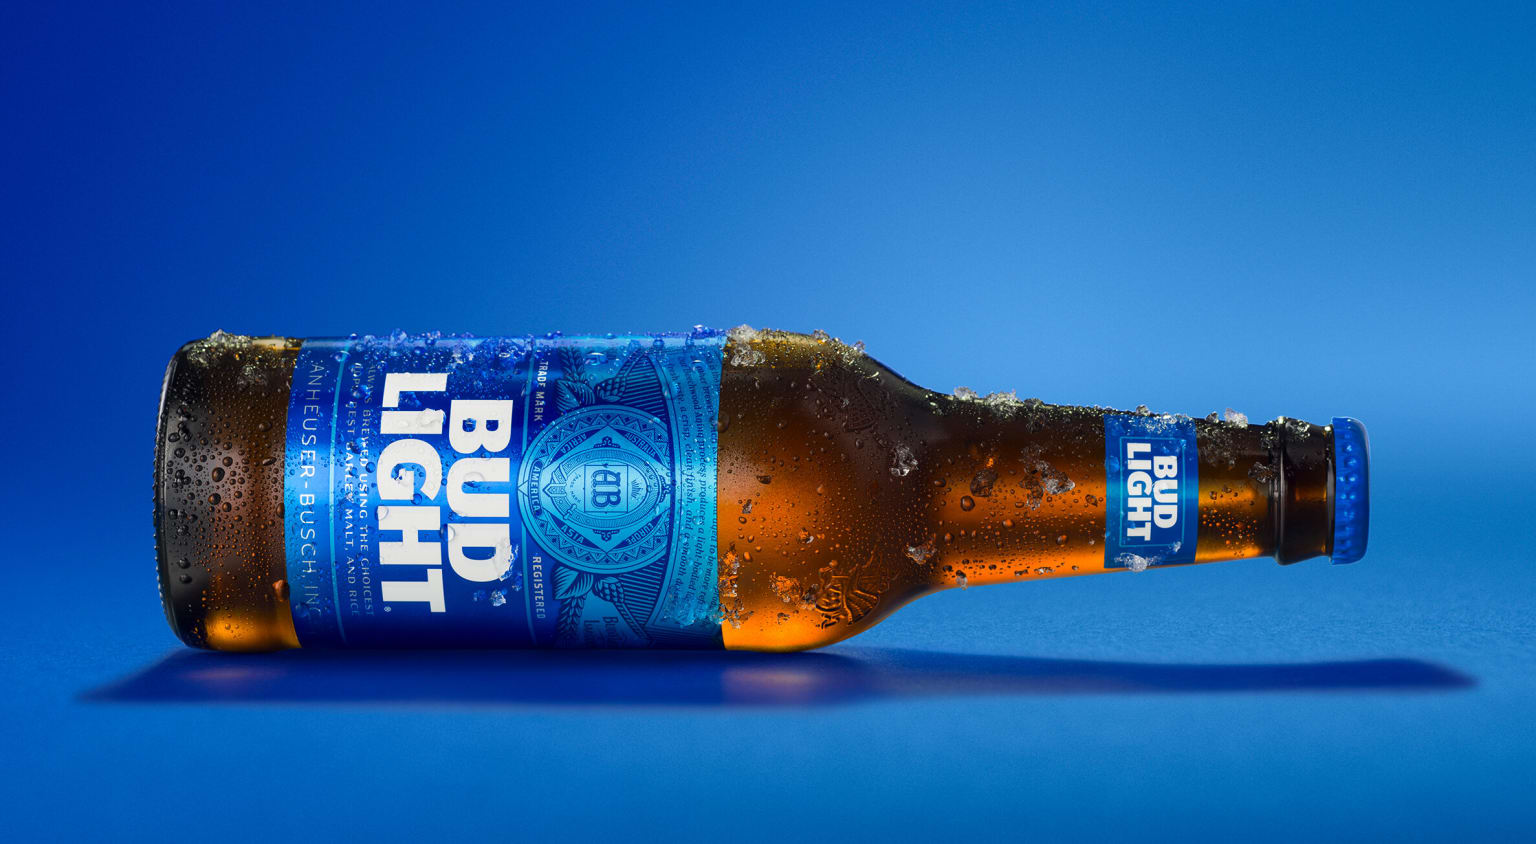 Bud Light Rebrand and Packaging